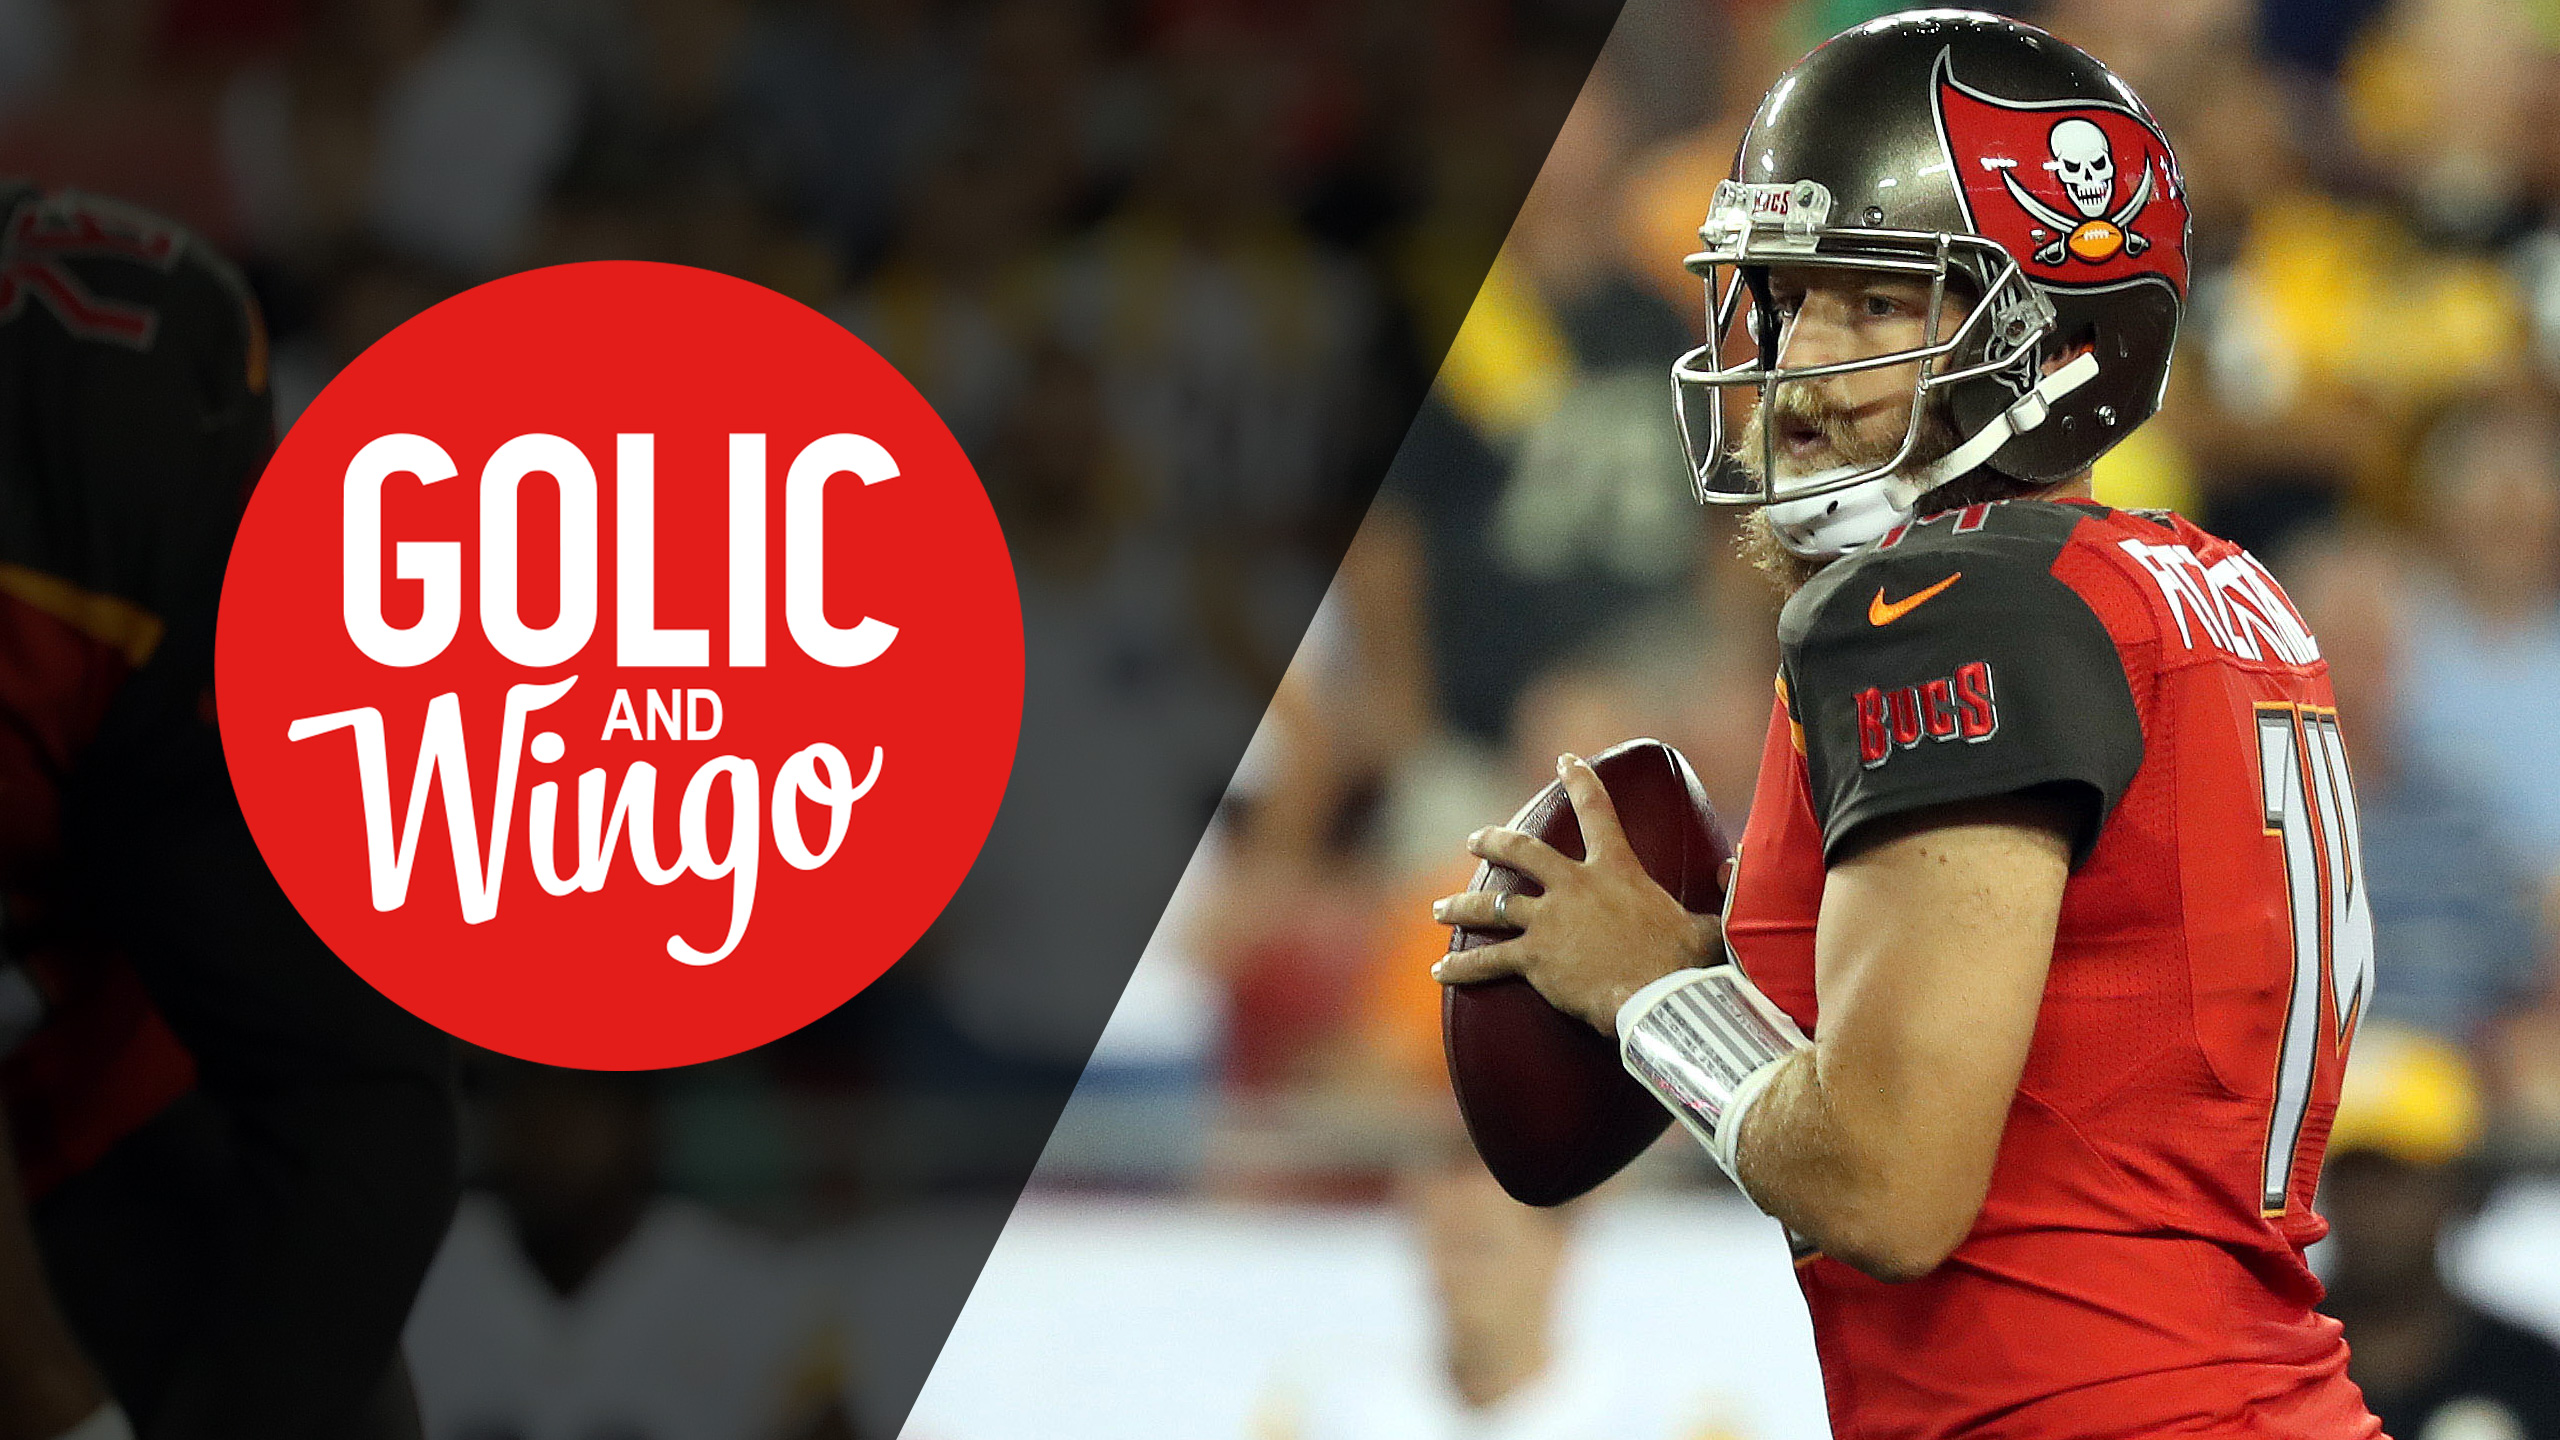 Tue, 9/25 - Golic and Wingo